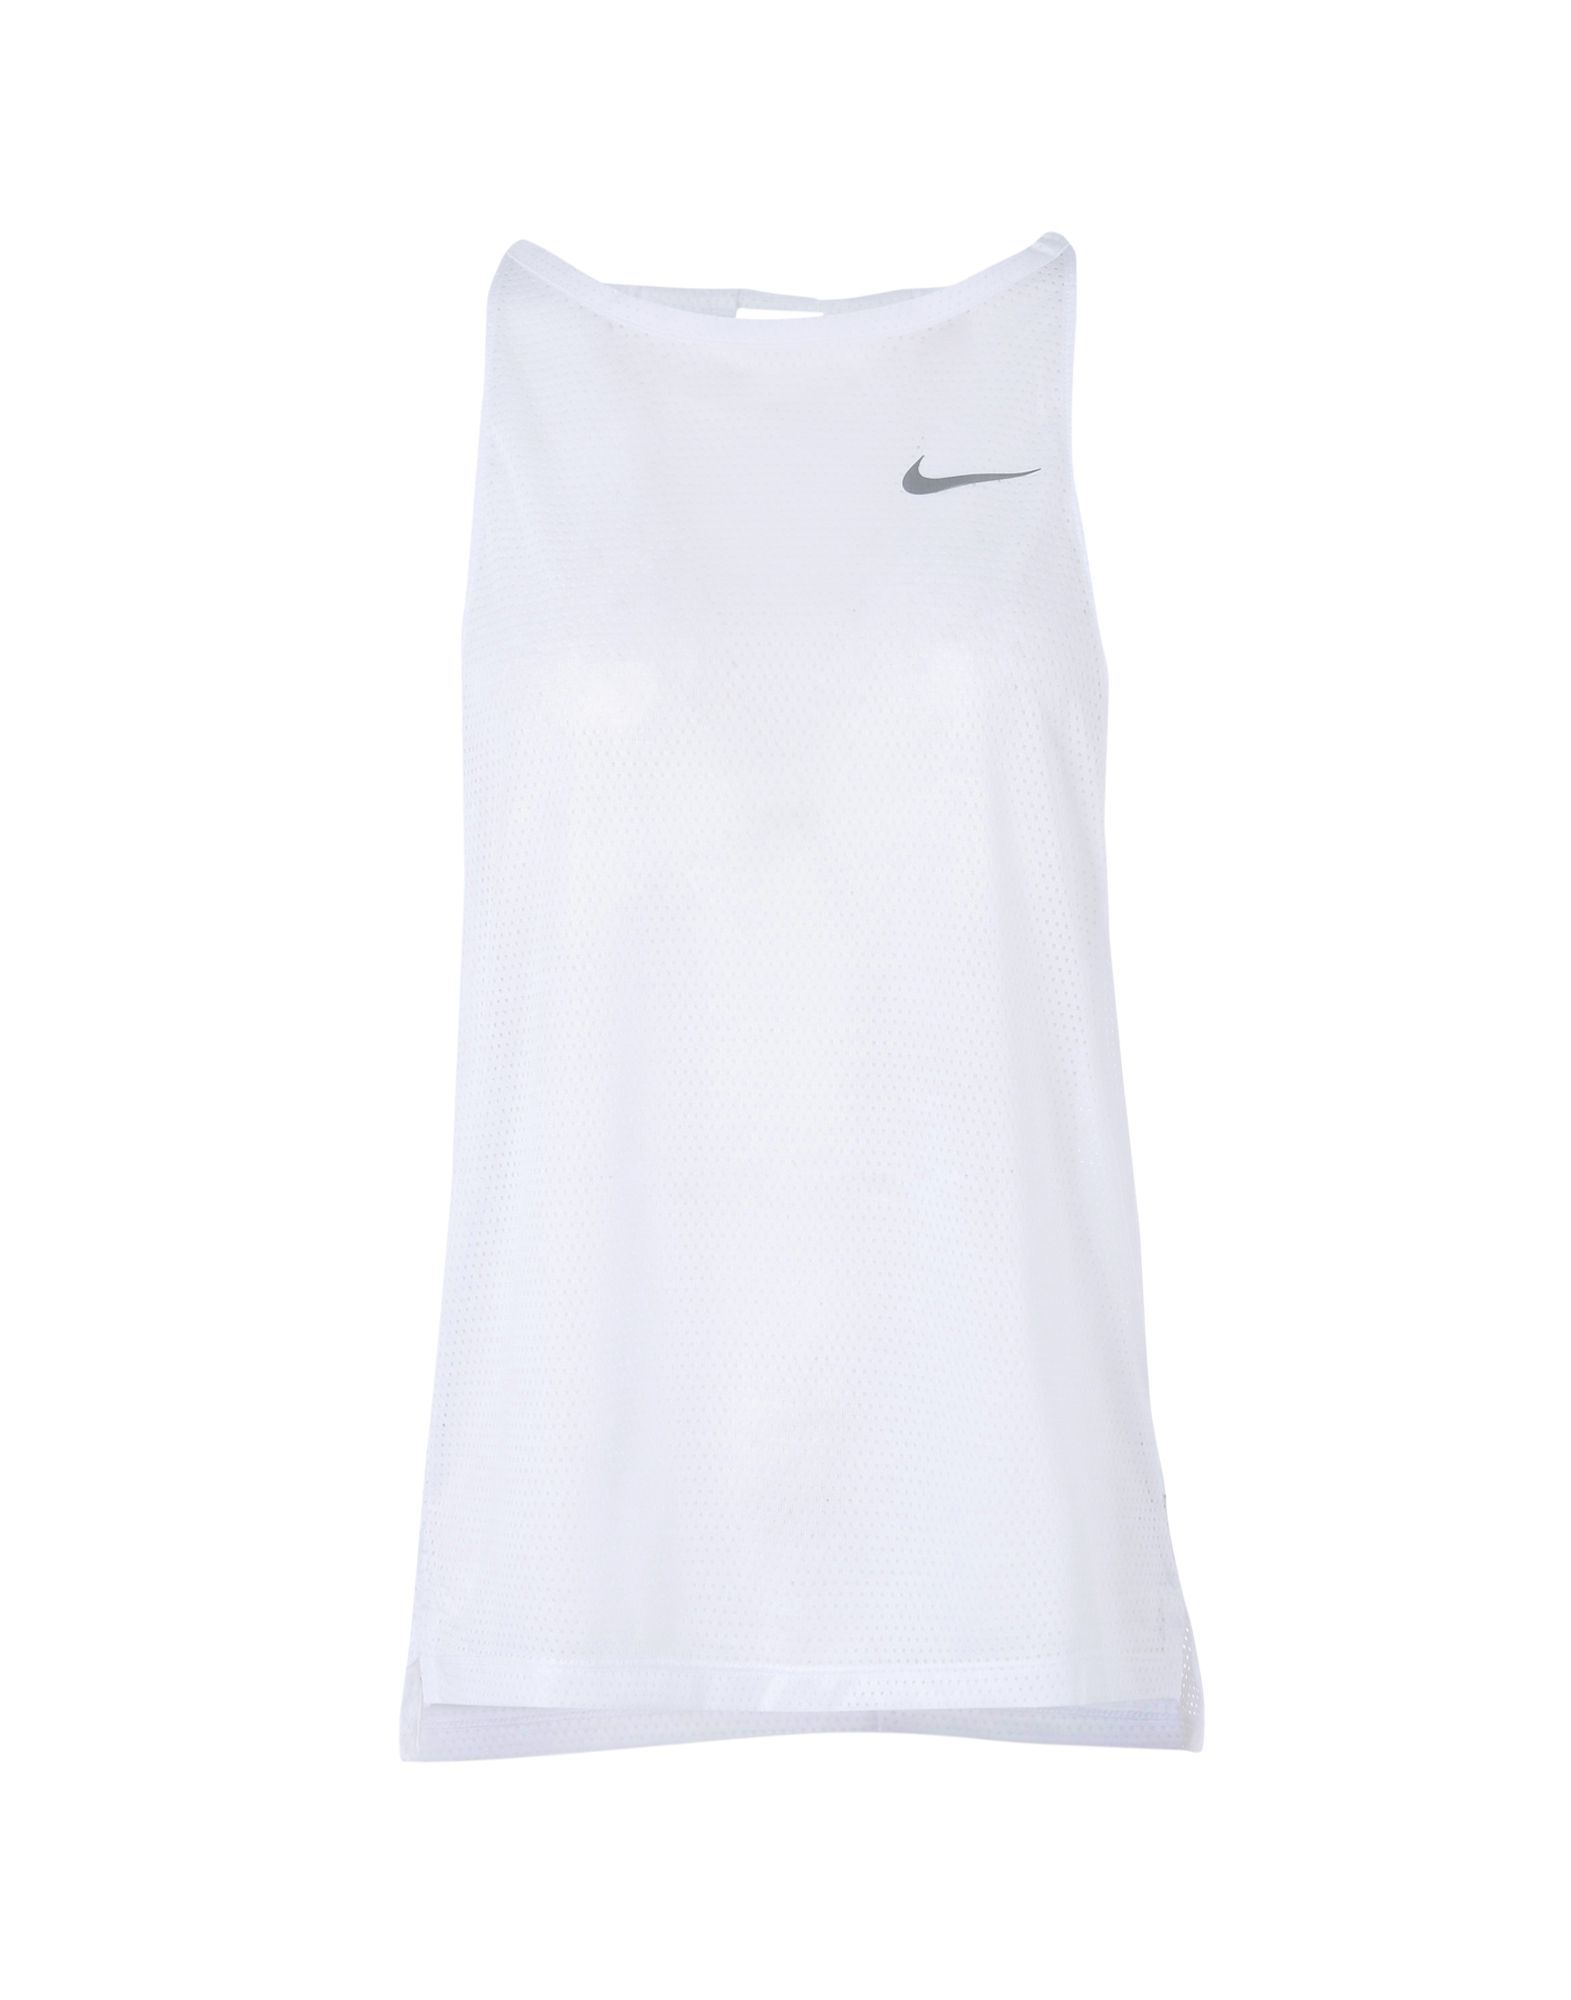 Nike Woman White Tops